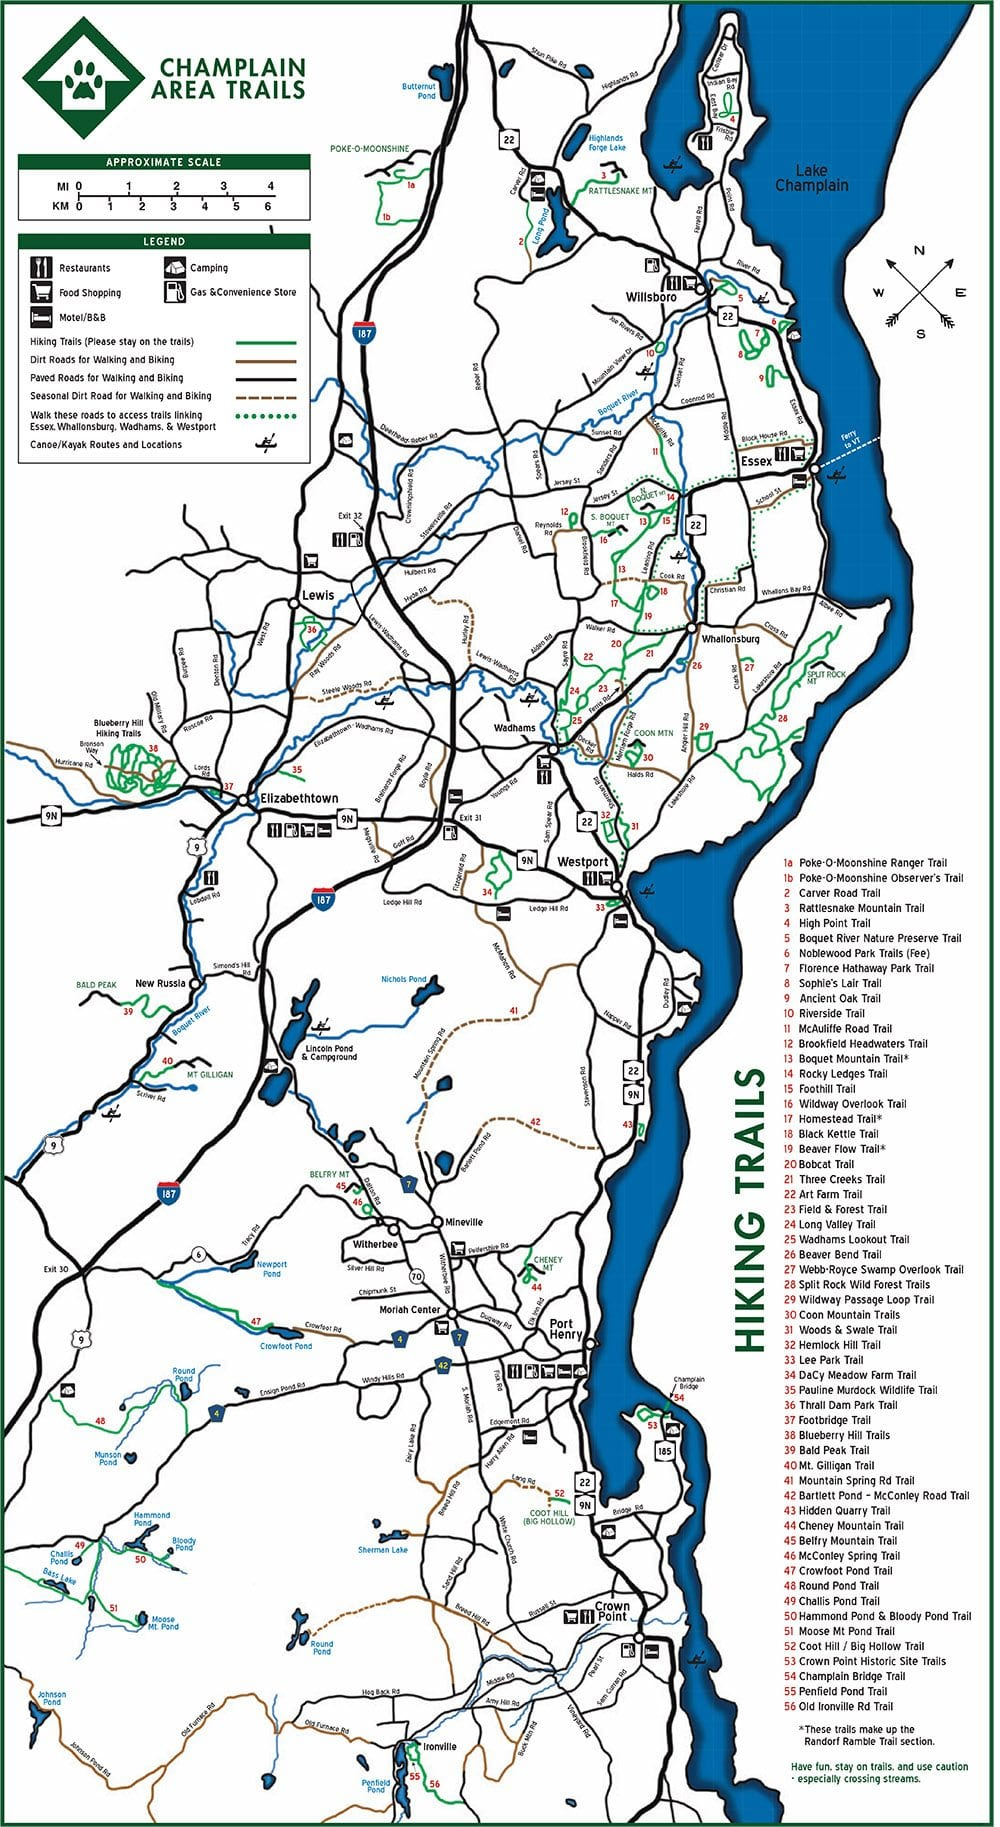 Champlain area trails publishes new trail map the adirondack to keep up to date with its expanding network of hiking trails in the champlain valley champlain area trails cats has published a new updated paper gumiabroncs Image collections